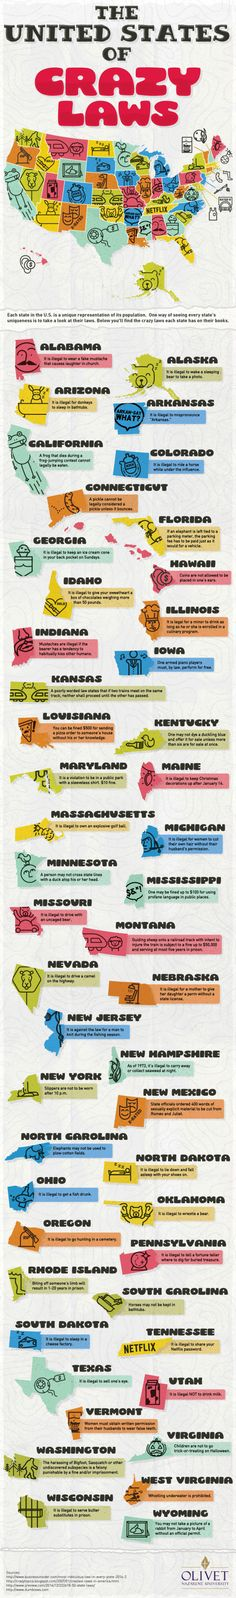 "The graphic highlights the wackiest laws in each state, and while some are certainly antiquated rules that have ""fallen through the cracks,"" others still apply in 2016."